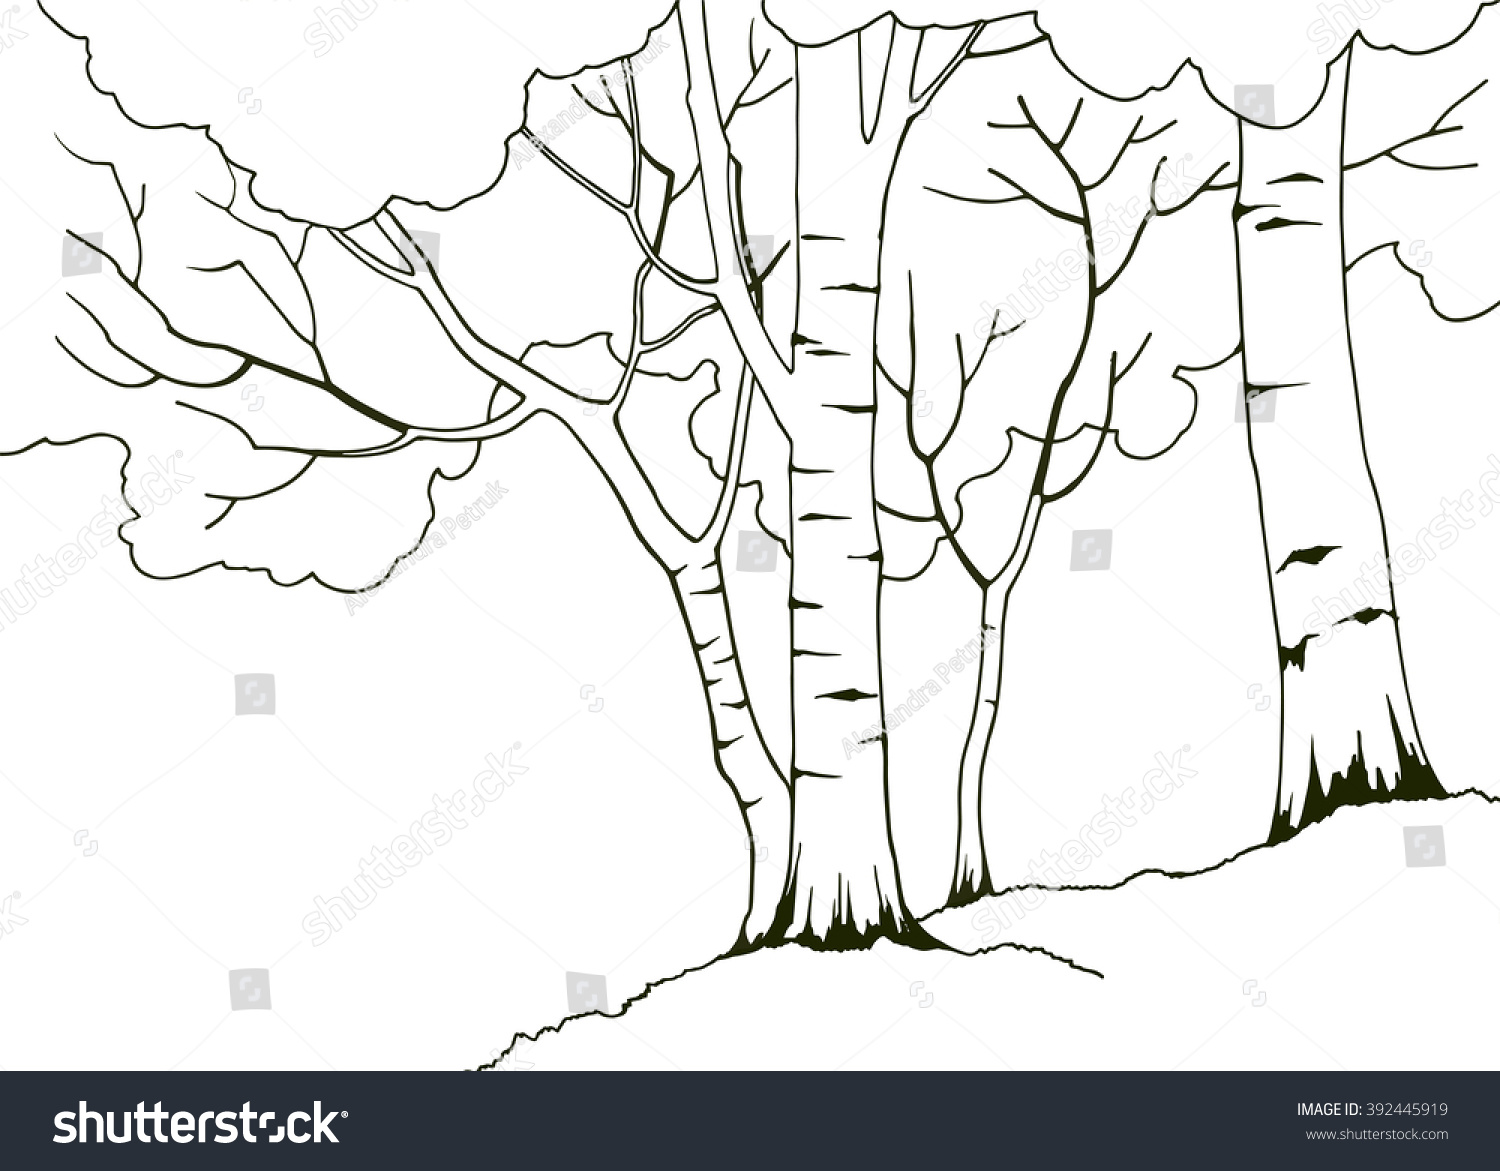 cartoon hand drawn nature illustration with four birch trees coloring book page - Birch Tree Branches Coloring Pages